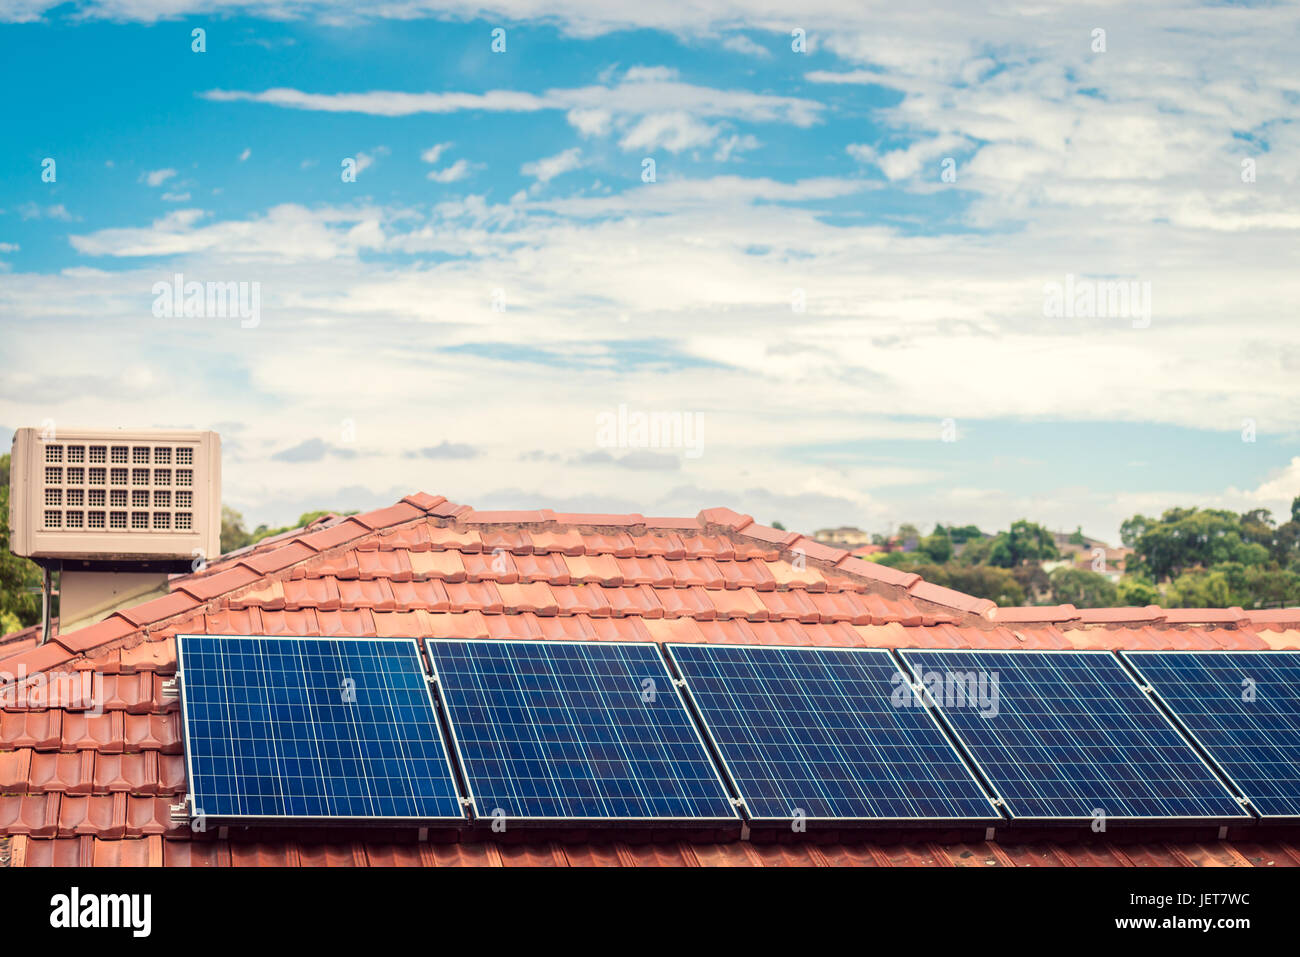 Solar panels installed on the house roof in one of the Melbourne suburbs, Victoria, Australia - Stock Image